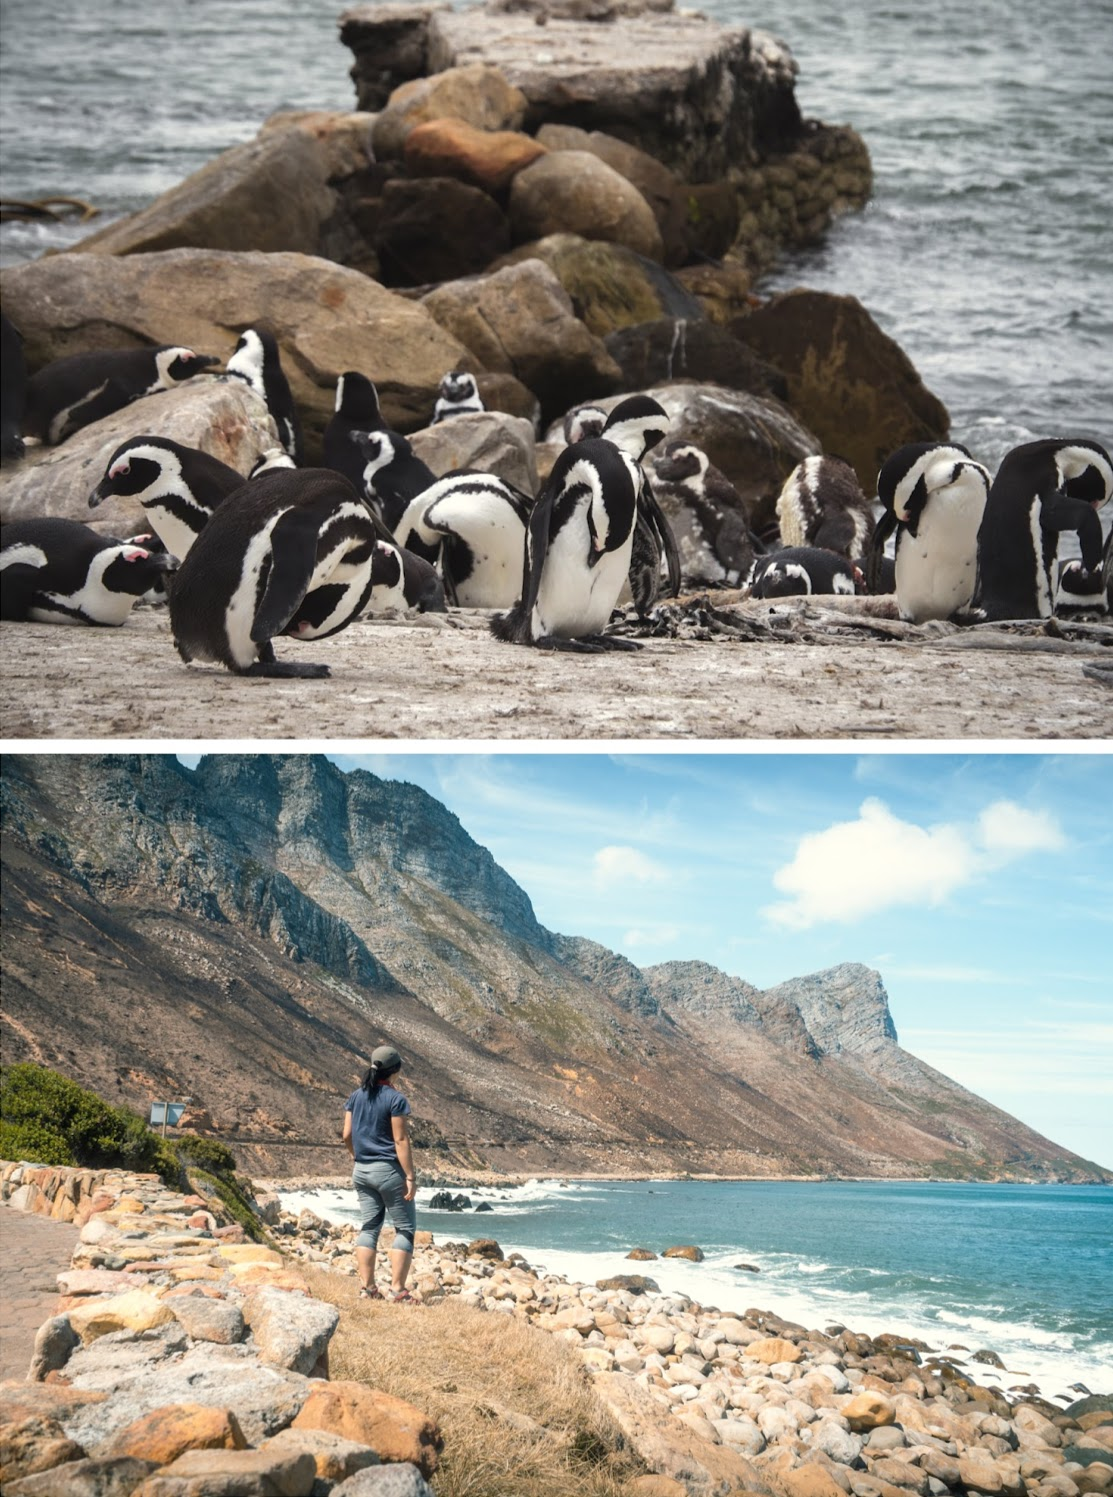 Top: Penguins from Stony Point Reserve. Bottom: Cape Town to Swellendam road.